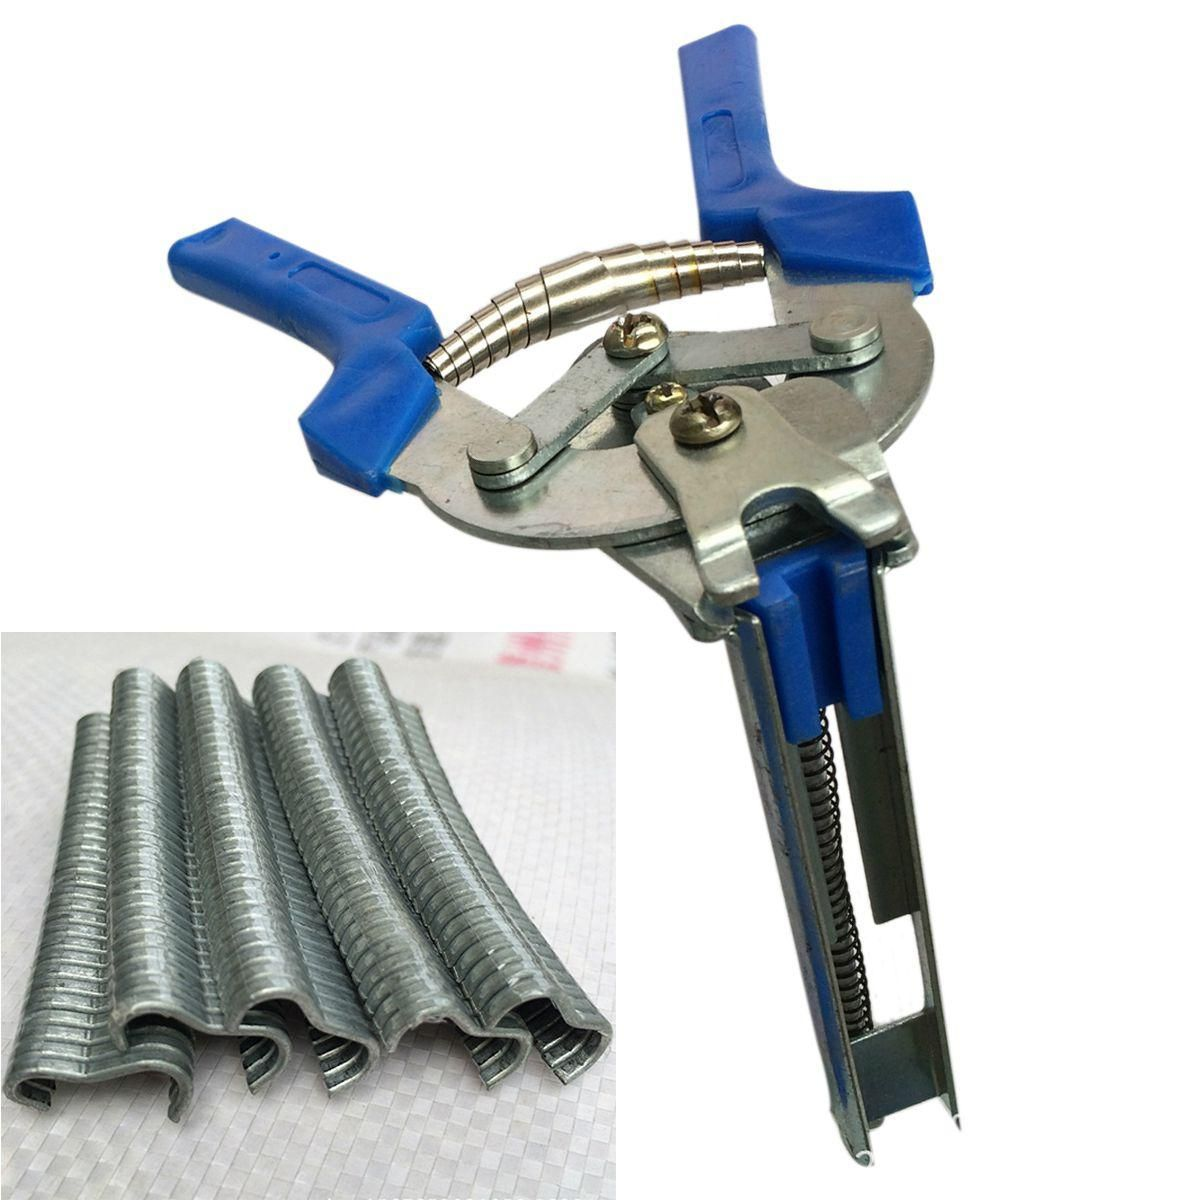 1pc Hog Ring Plier Tool And 600pcs M Clips Chicken Mesh Cage Wire Fencing Crimping Solder Joint Welding Repair Hand Tools Tools Hand Tools Wire Fence